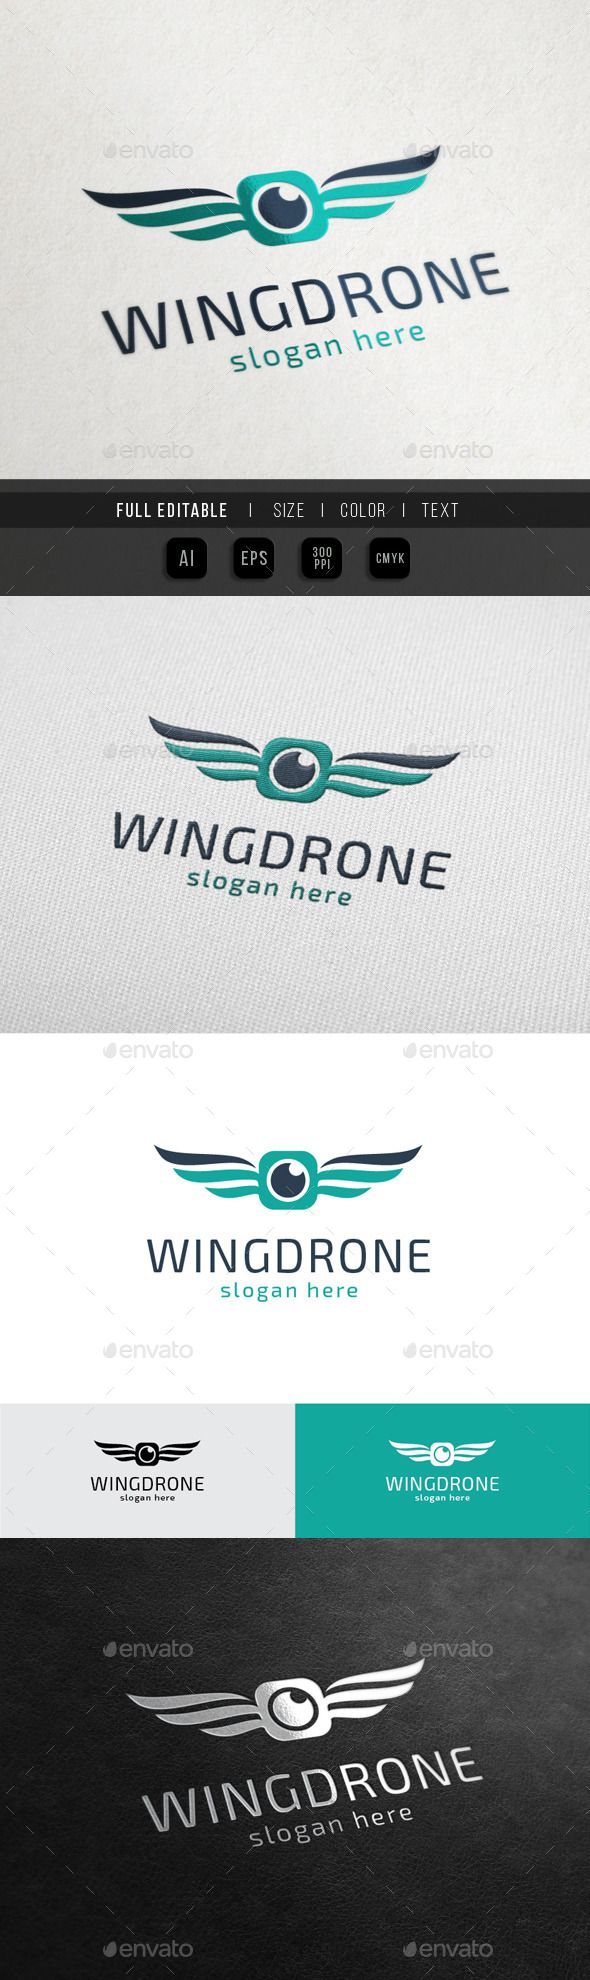 Wing Drone Sky Camera - Logo Design Template Vector #logotype Download it here: http://graphicriver.net/item/wing-drone-sky-camera/10523978?s_rank=365?ref=nesto